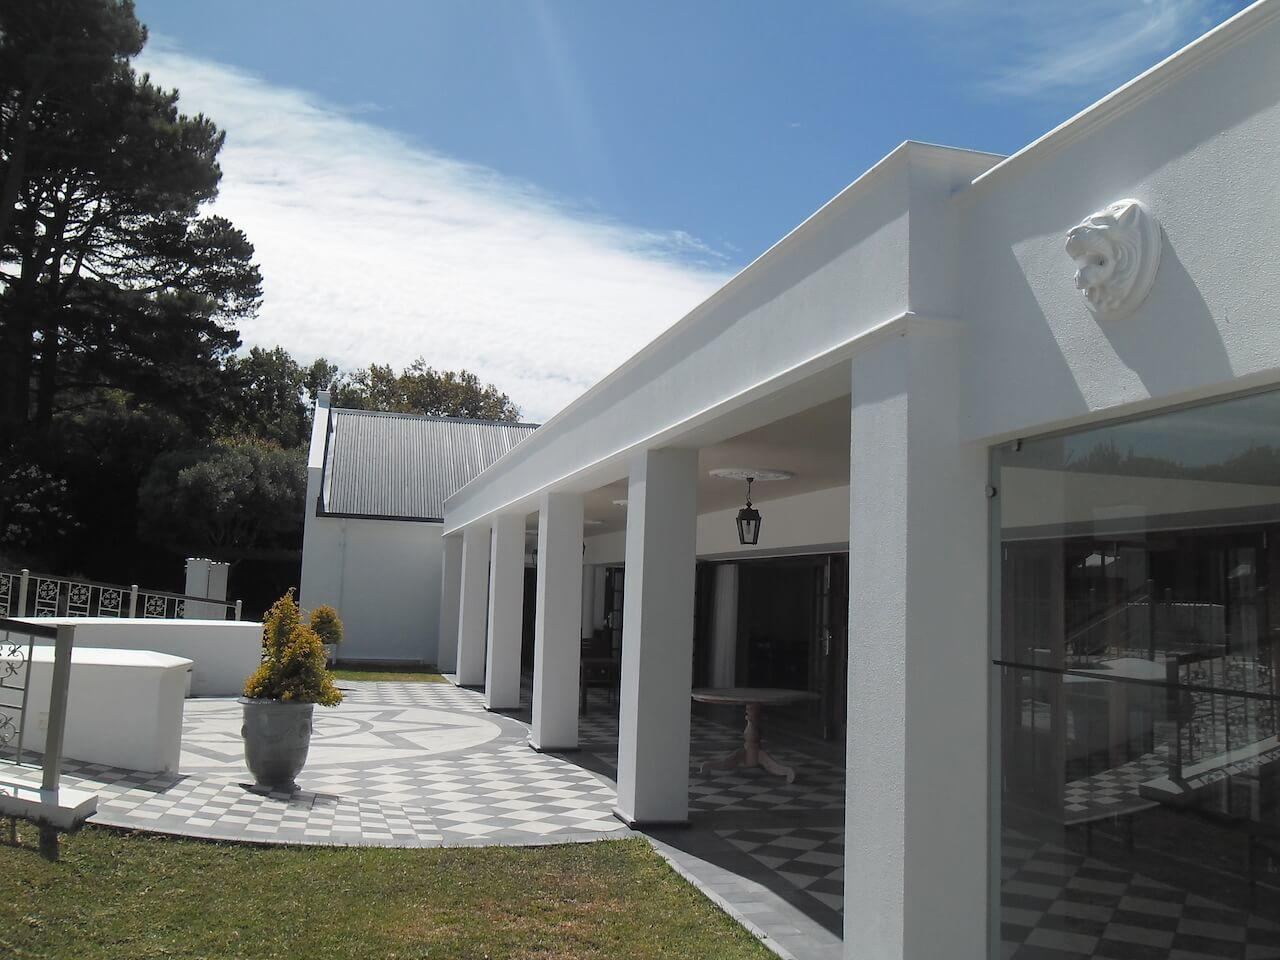 Back Facade With Entry Points to Open Plan Lounge and Communal Dining Areas